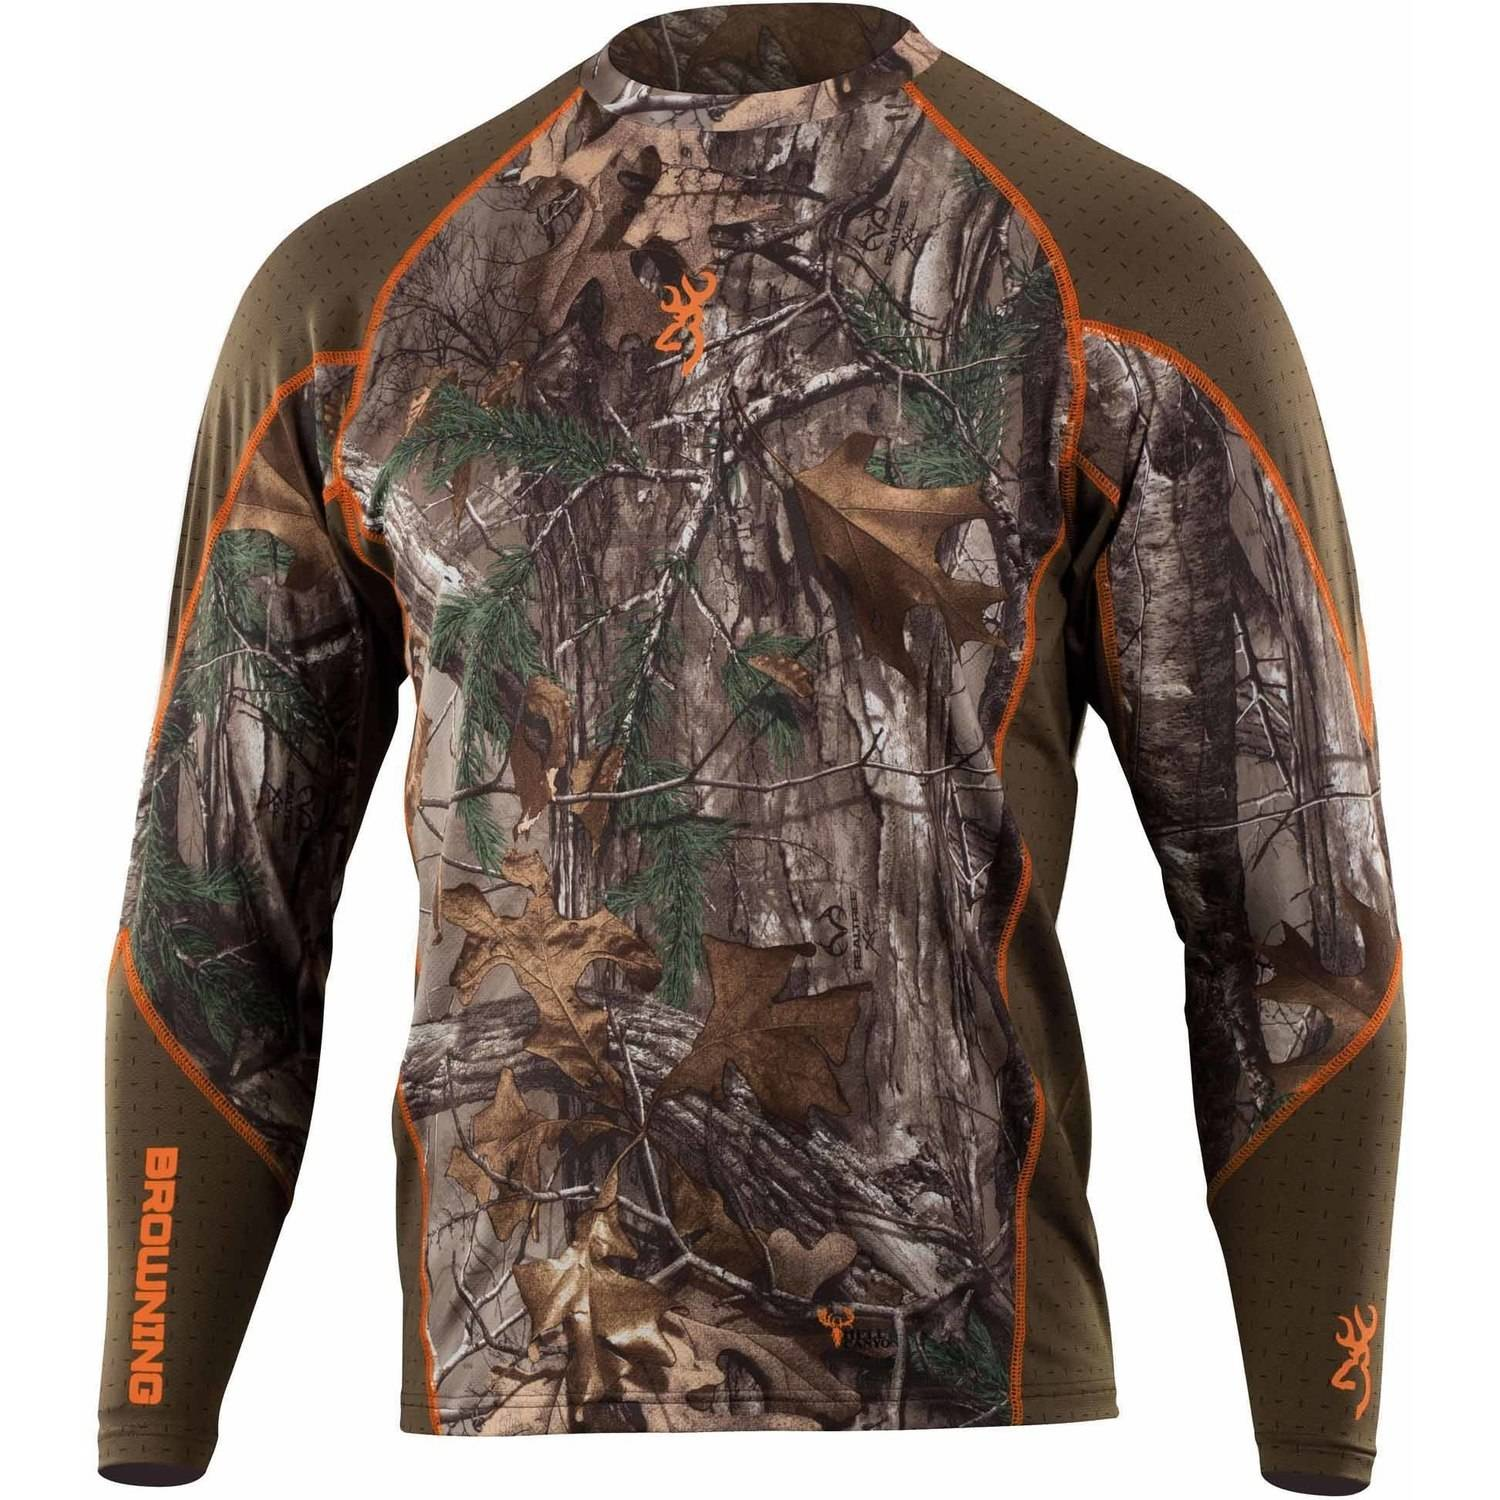 Browning Hell's Canyon Lightweight Base Layer Shirt by Browning